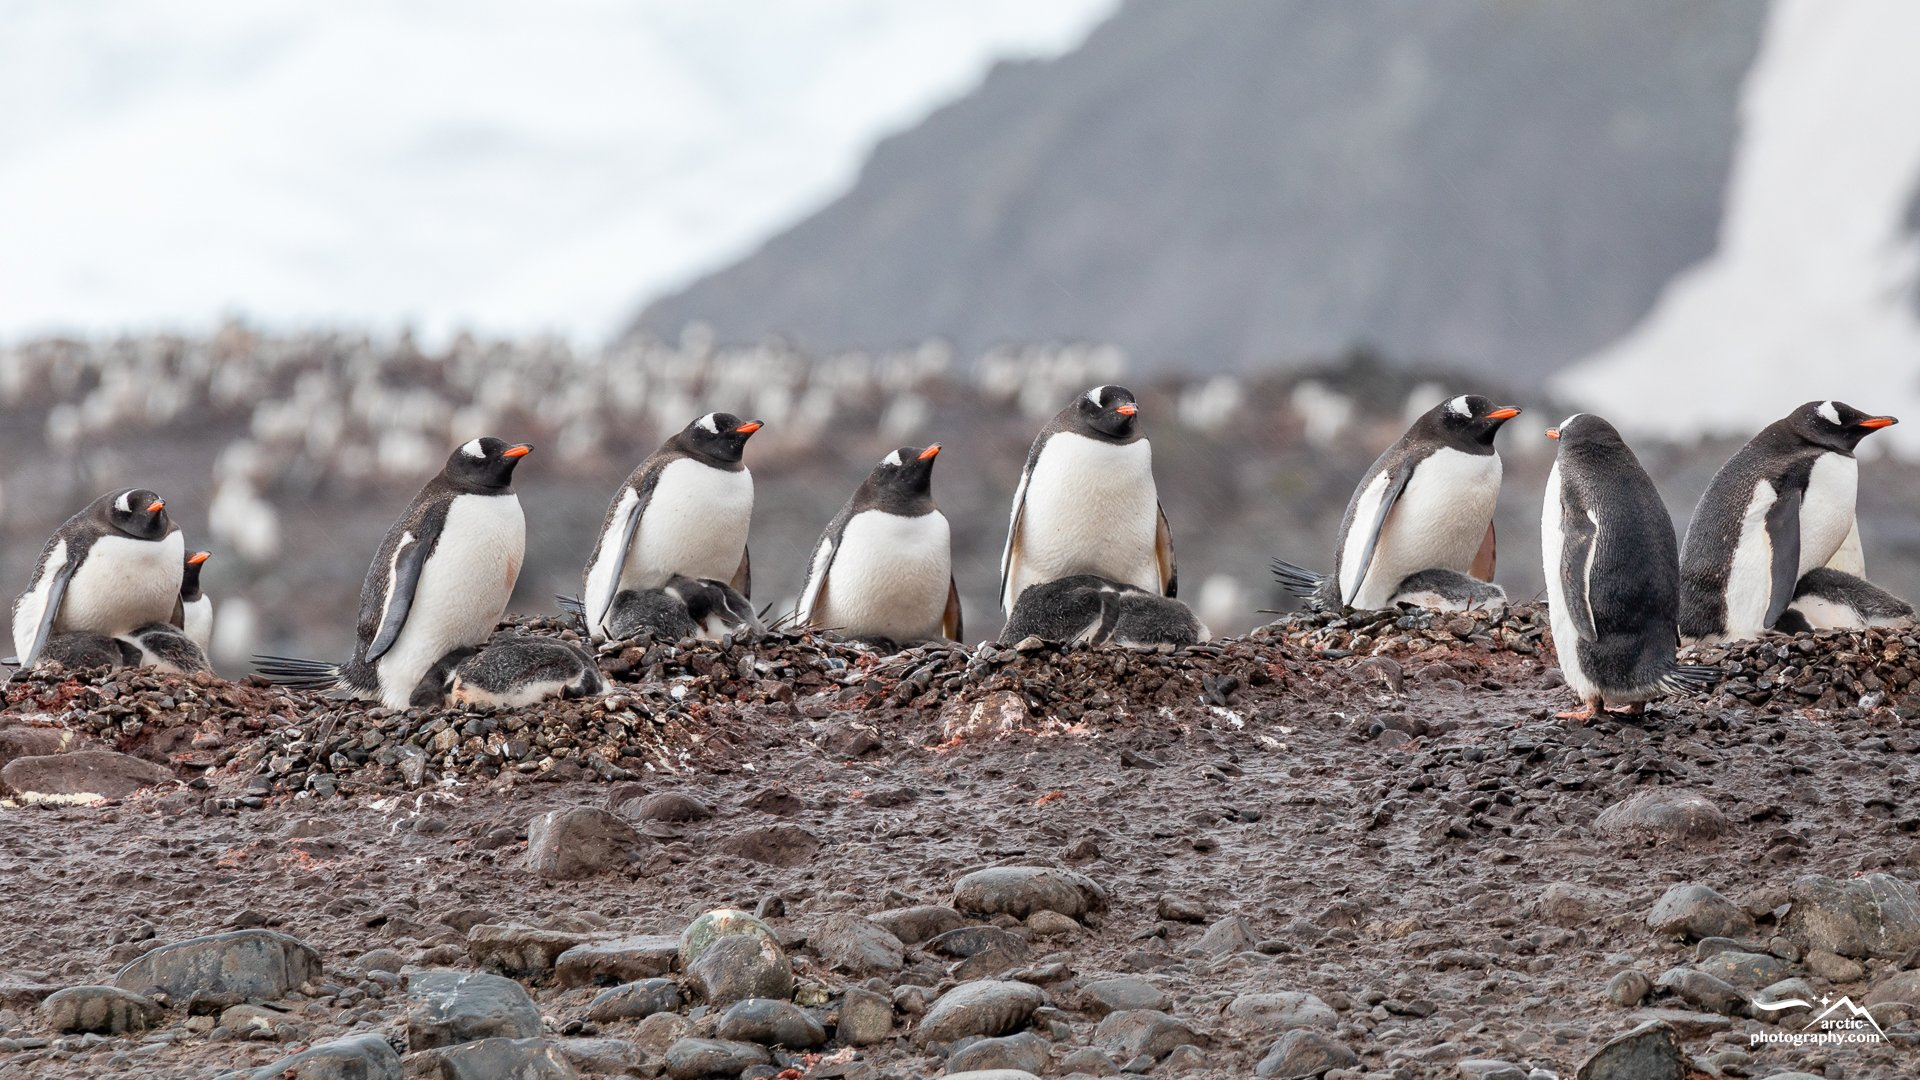 Gentoo penguins with chicks at Yankee Harbour, Greenwich Island